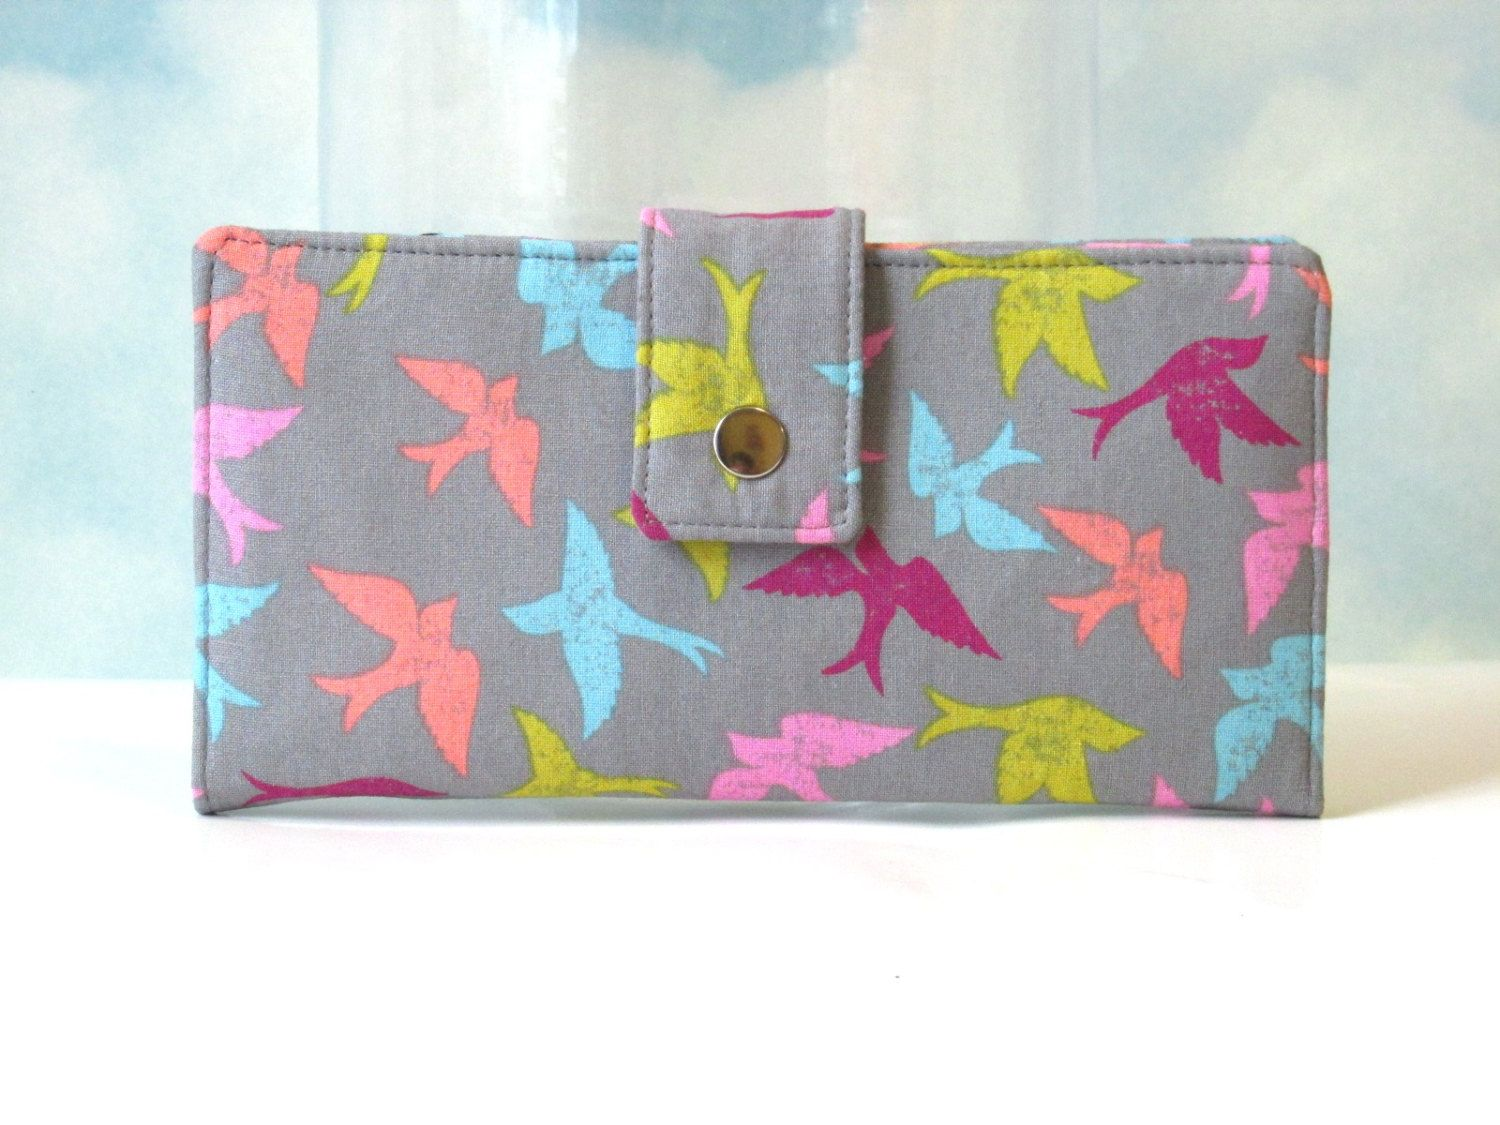 Handmade womens wallet  - birds everywhere with colors - vegan wallet clutch - Custom order - gift for her by PatrisCorner on Etsy